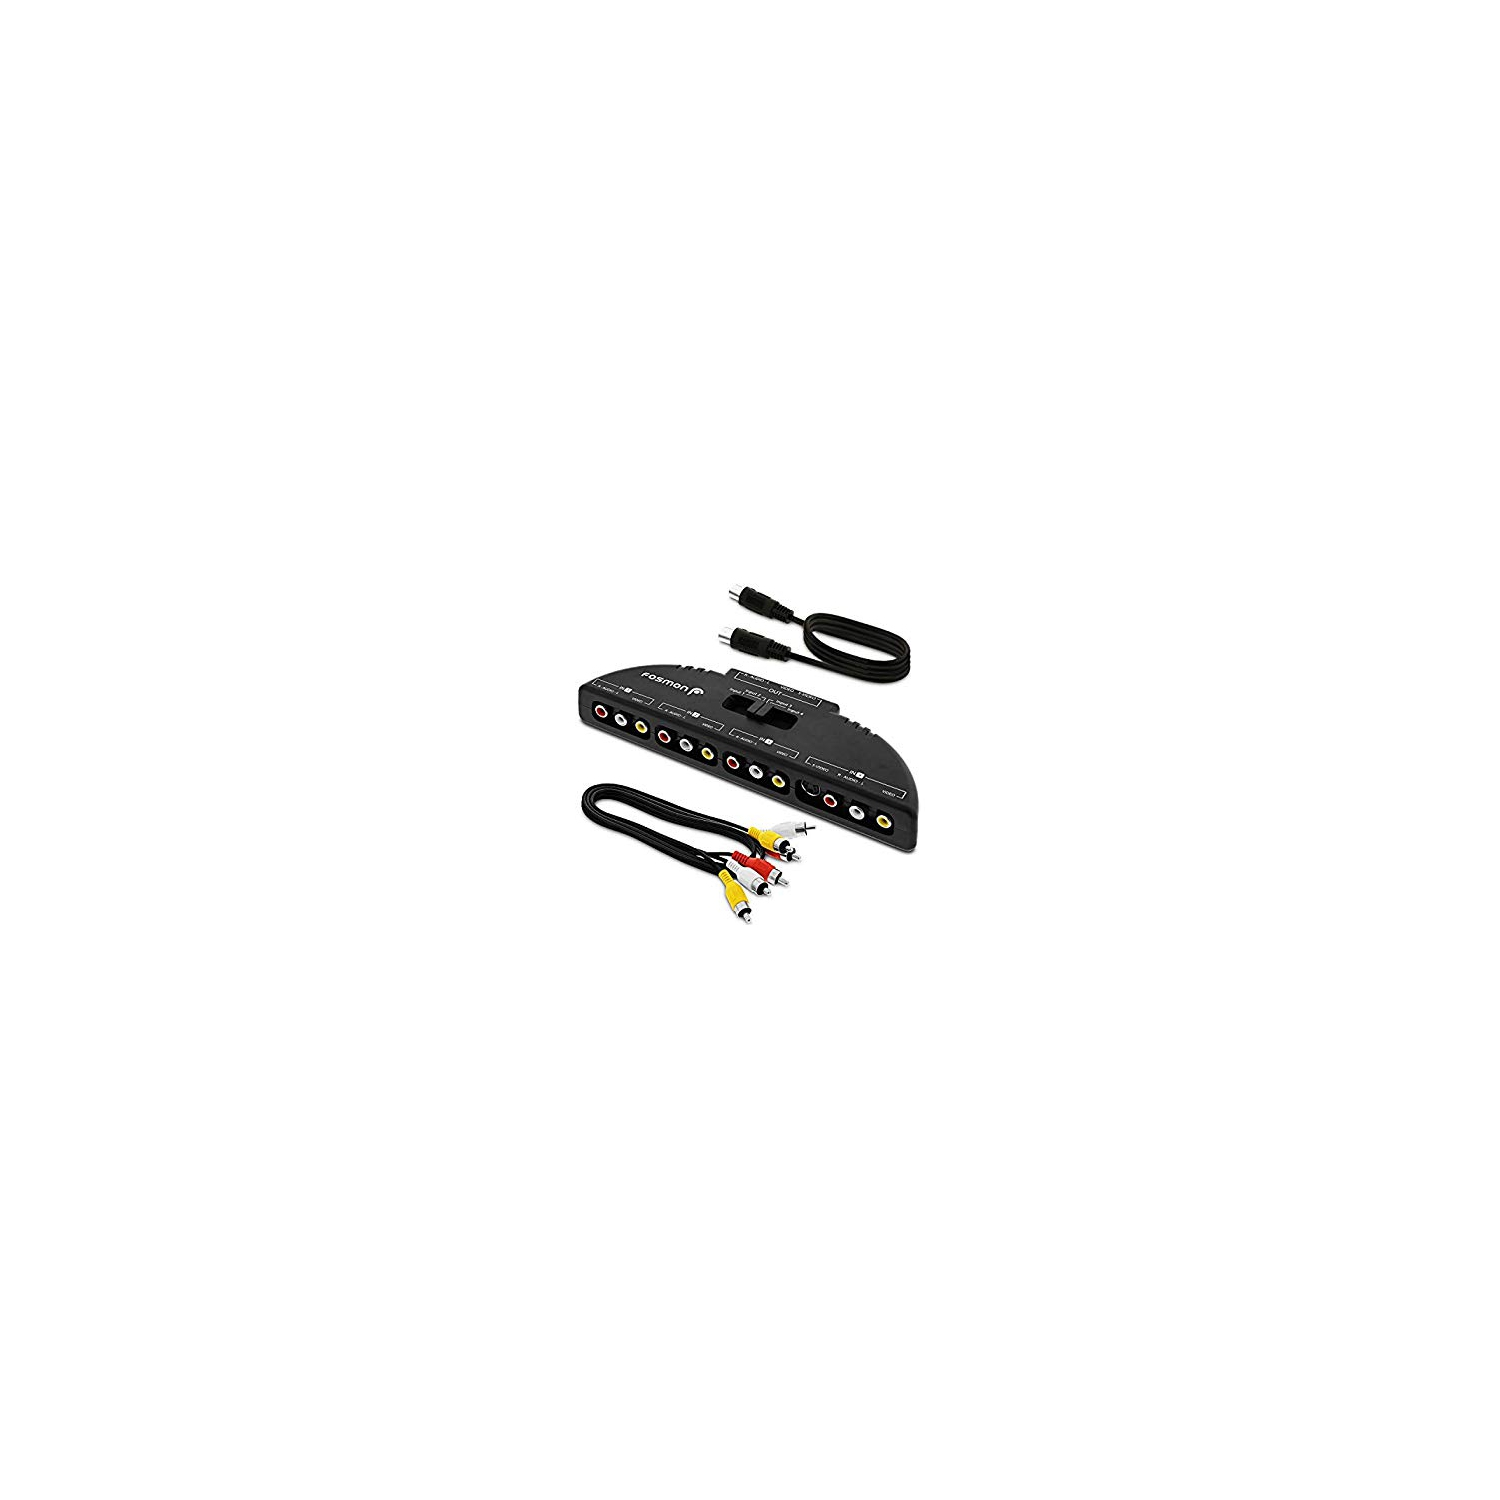 Fosmon Technology 4 Way Audio Video Rca Switch Selector Splitter Box Av Patch Cable For Connecting Output Devices To Y Cords Best Buy